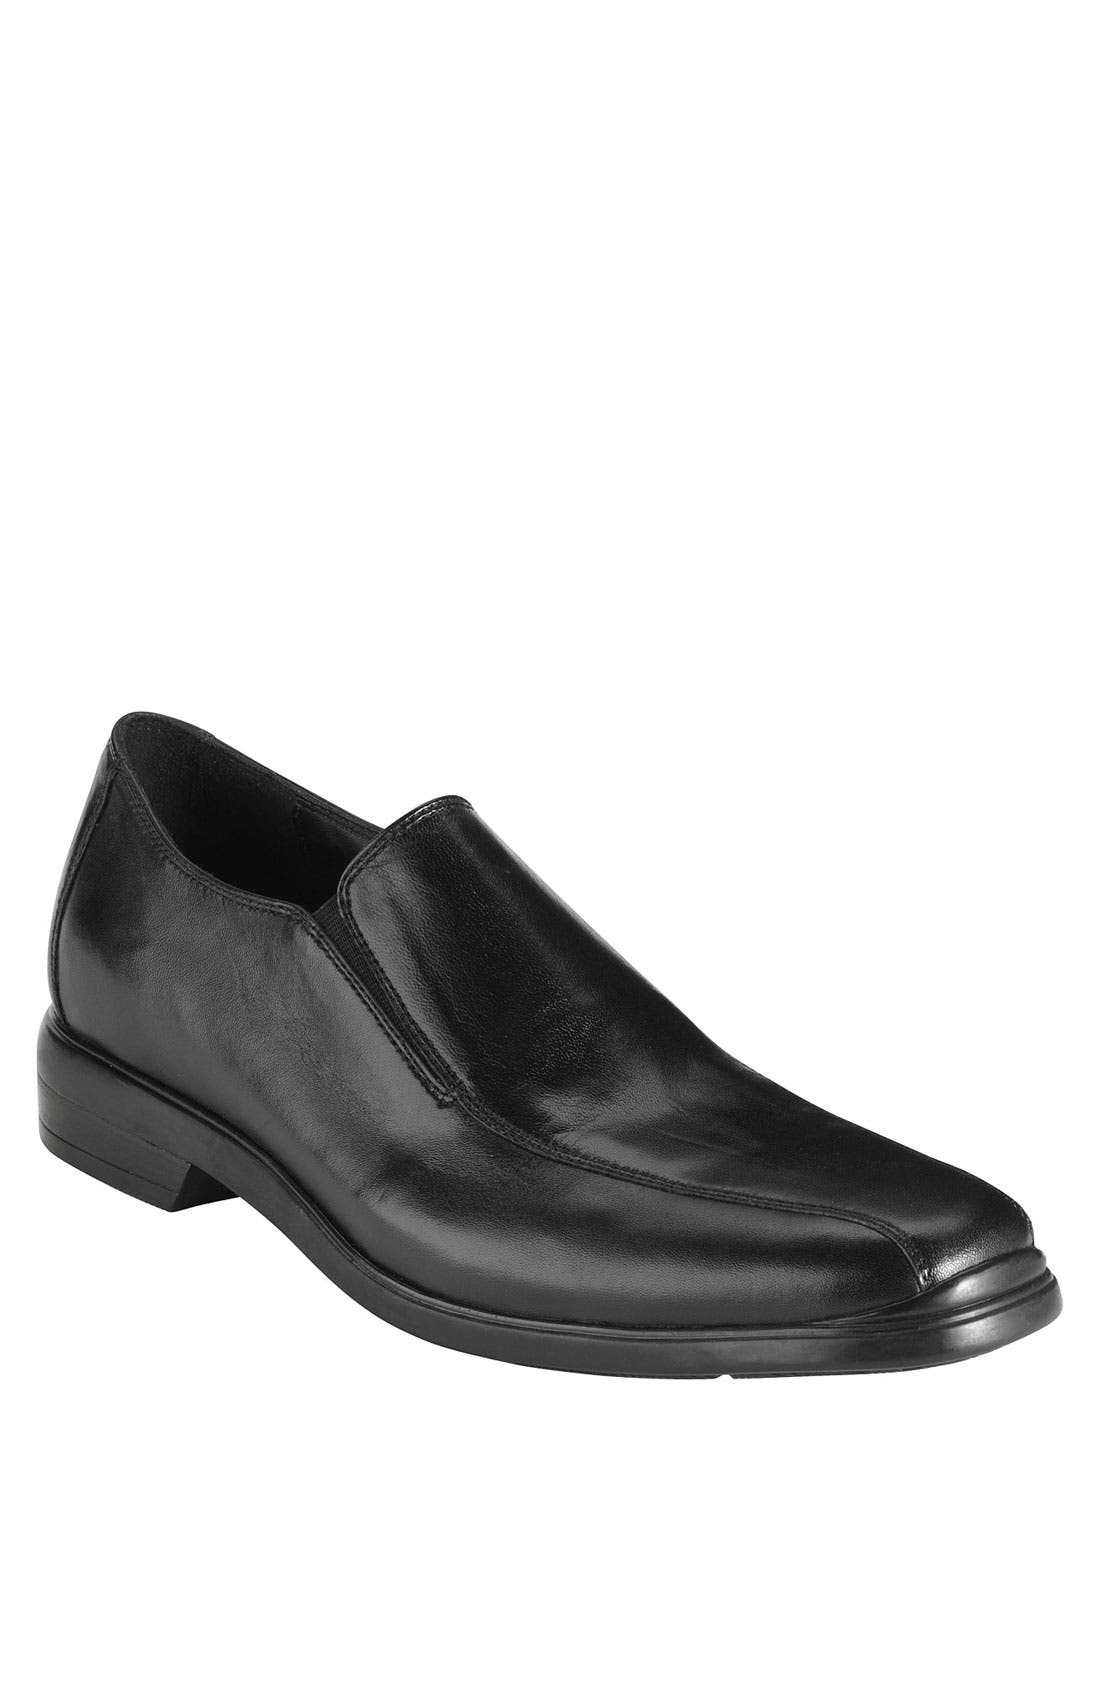 Alternate Image 1 Selected - Cole Haan 'Air Wallace' Slip-On